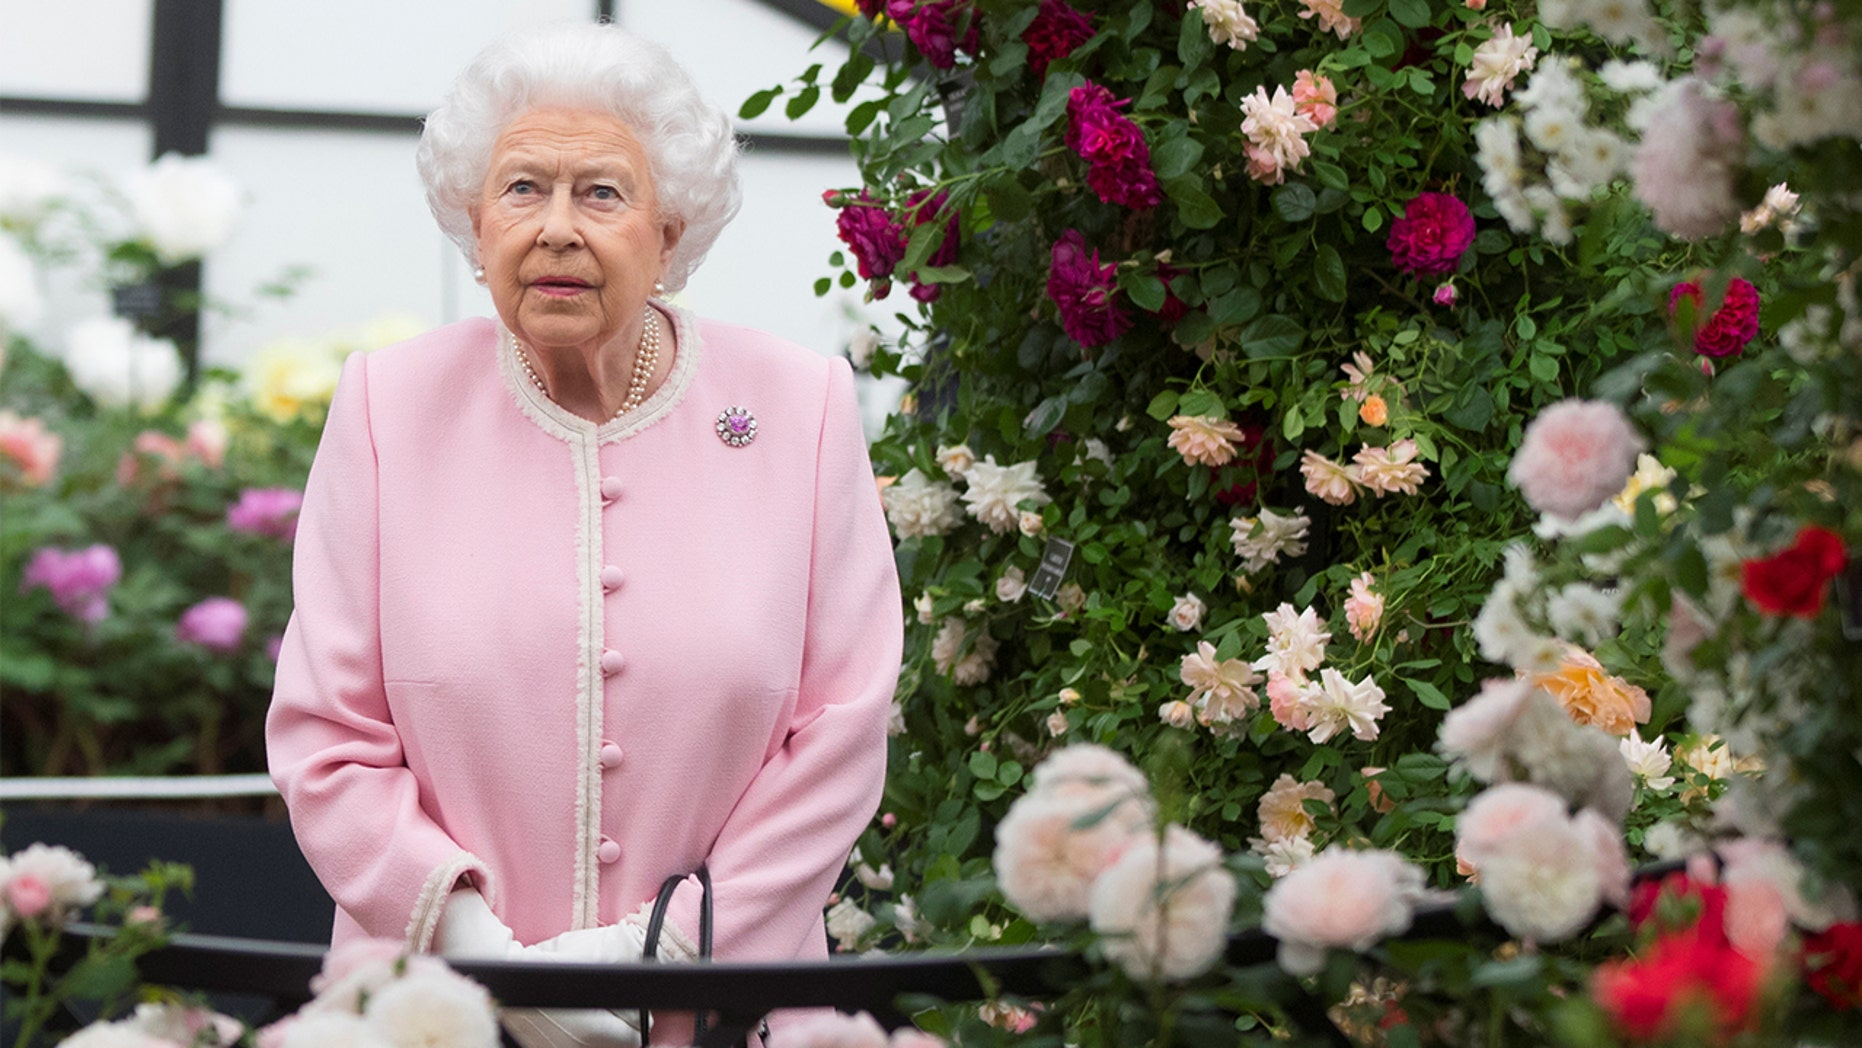 Britain's Queen Elizabeth II was seen wearing sunglasses at a number of recent public engagements.